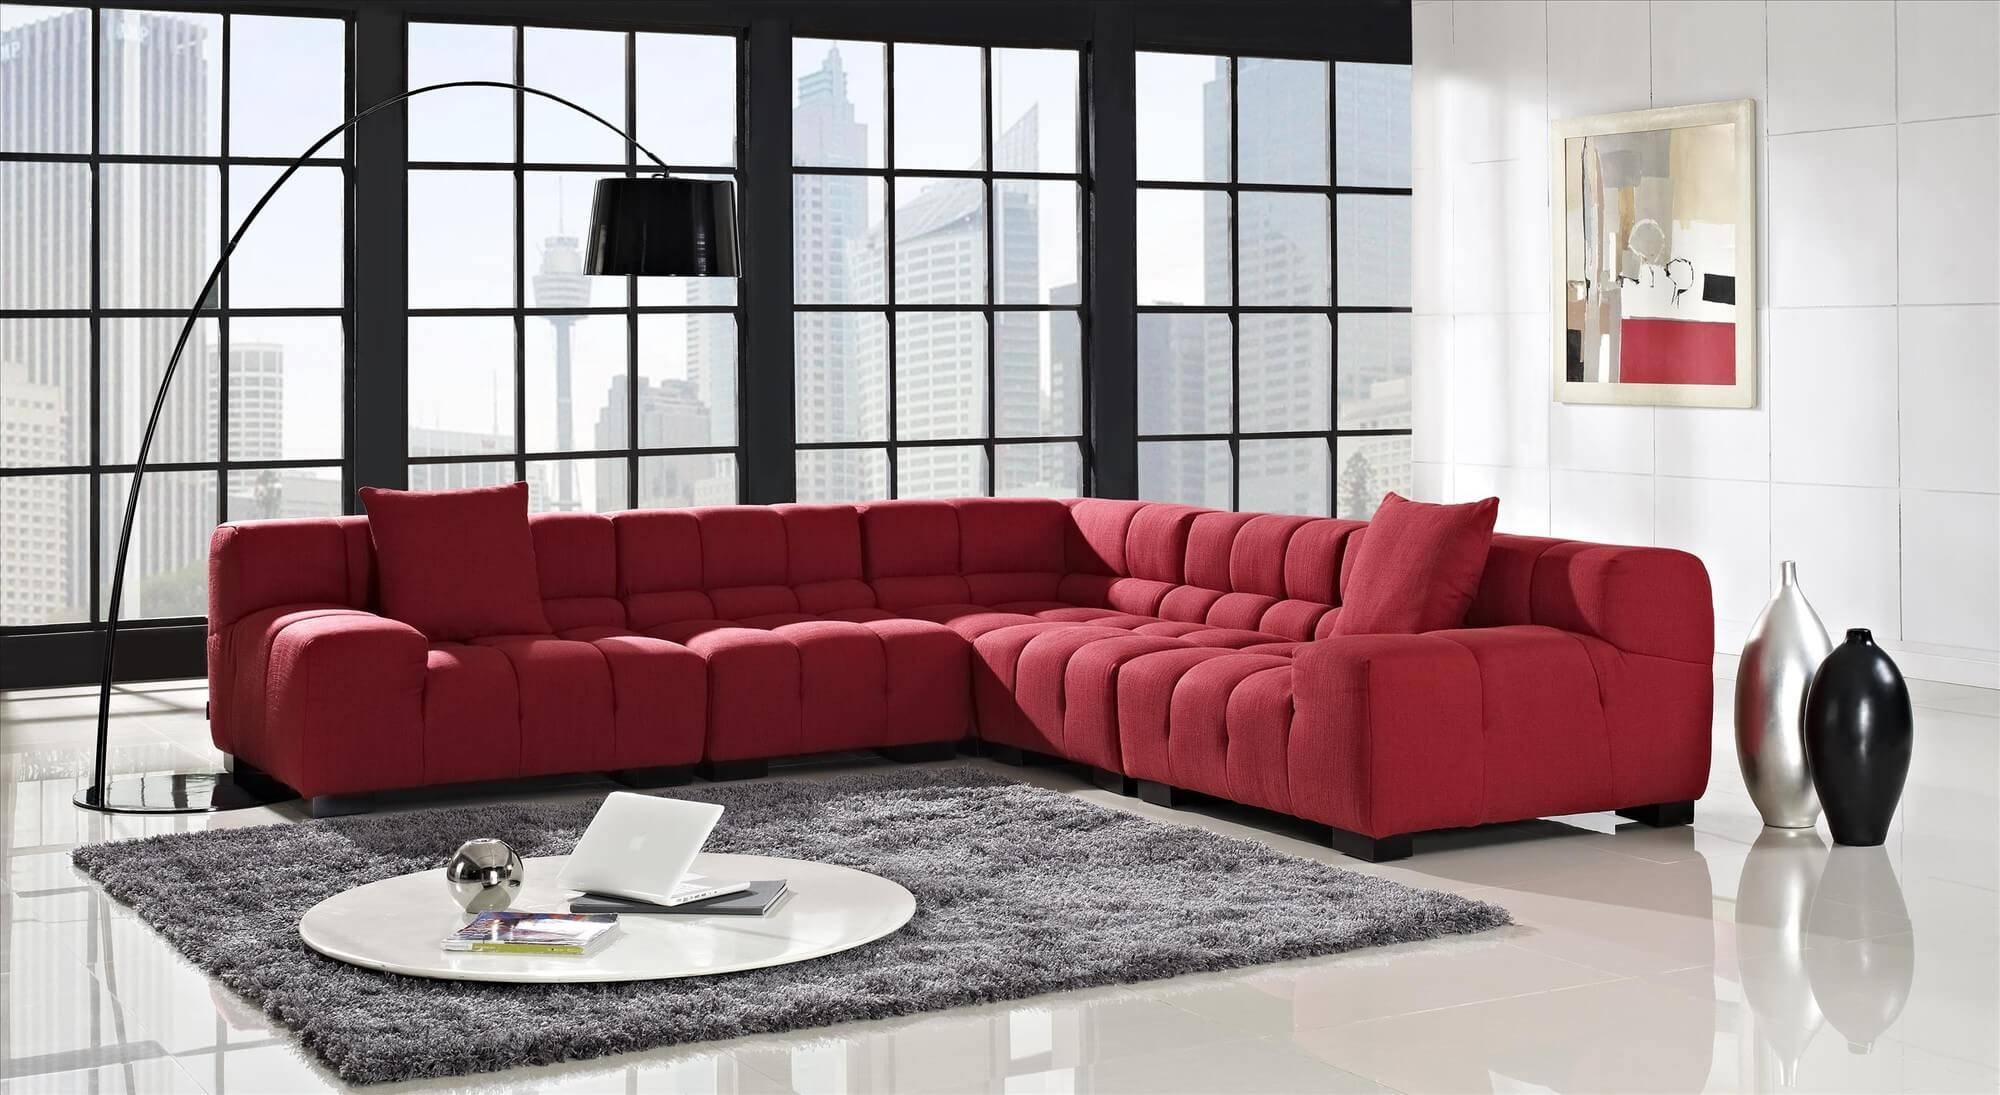 Fascinating Firm Sectional Sofa 58 On Western Style Sectional with regard to Western Style Sectional Sofas (Image 9 of 30)